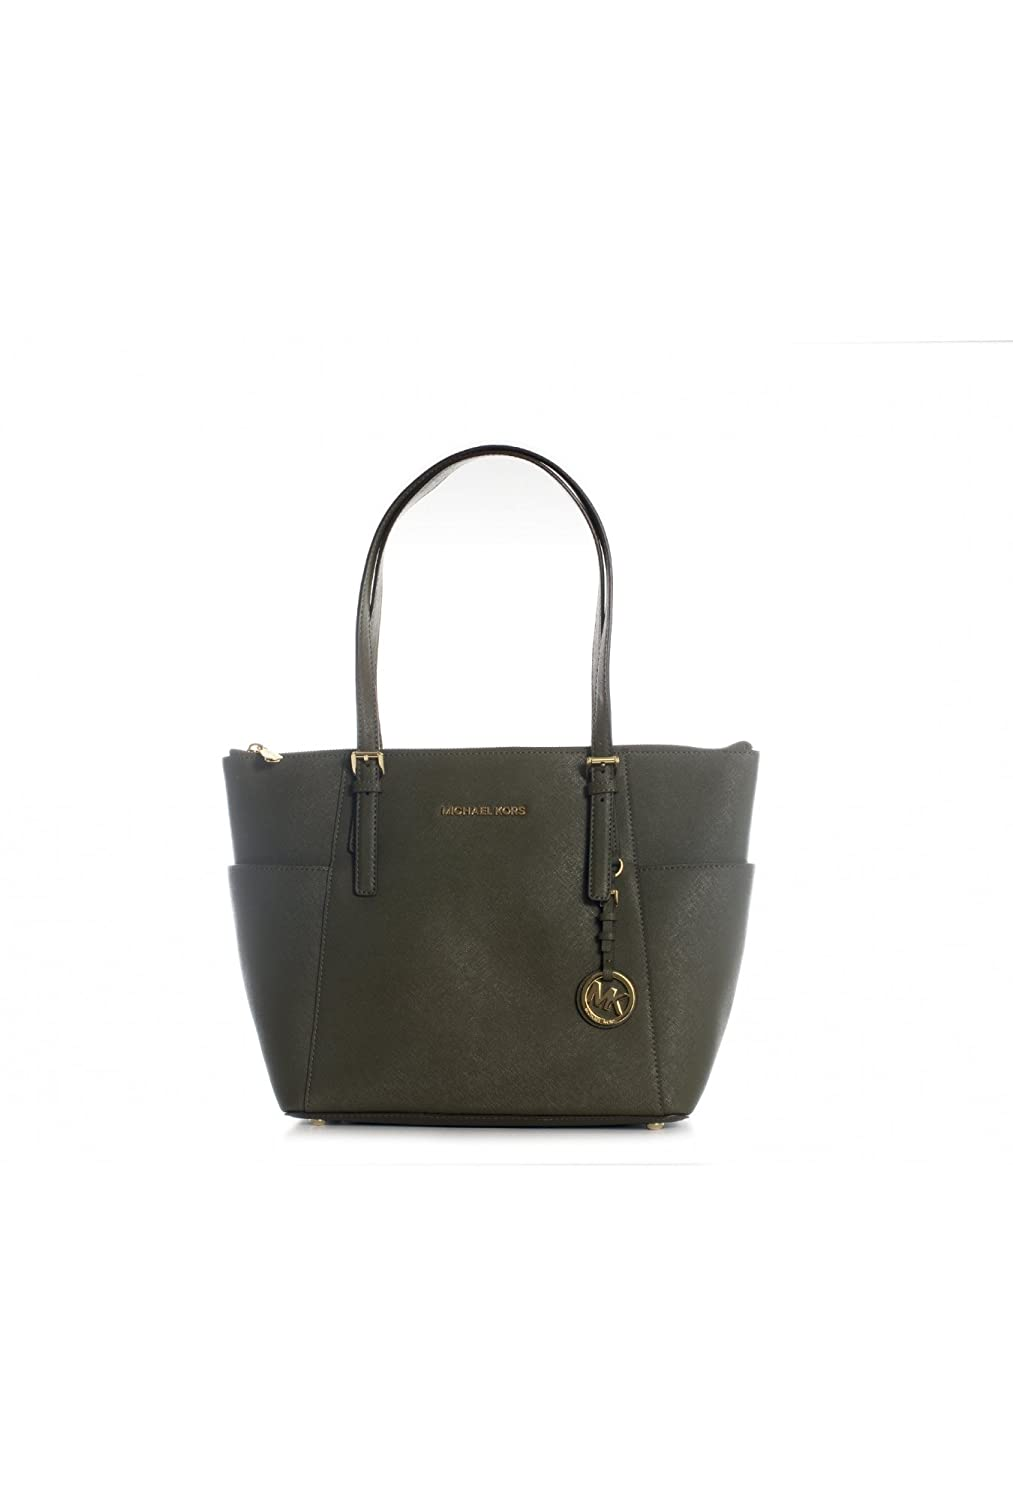 ac20358272be Amazon.com  Michael Kors Jet Set Item EW TZ Tote Loden Green Saffiano  Leather  Shoes